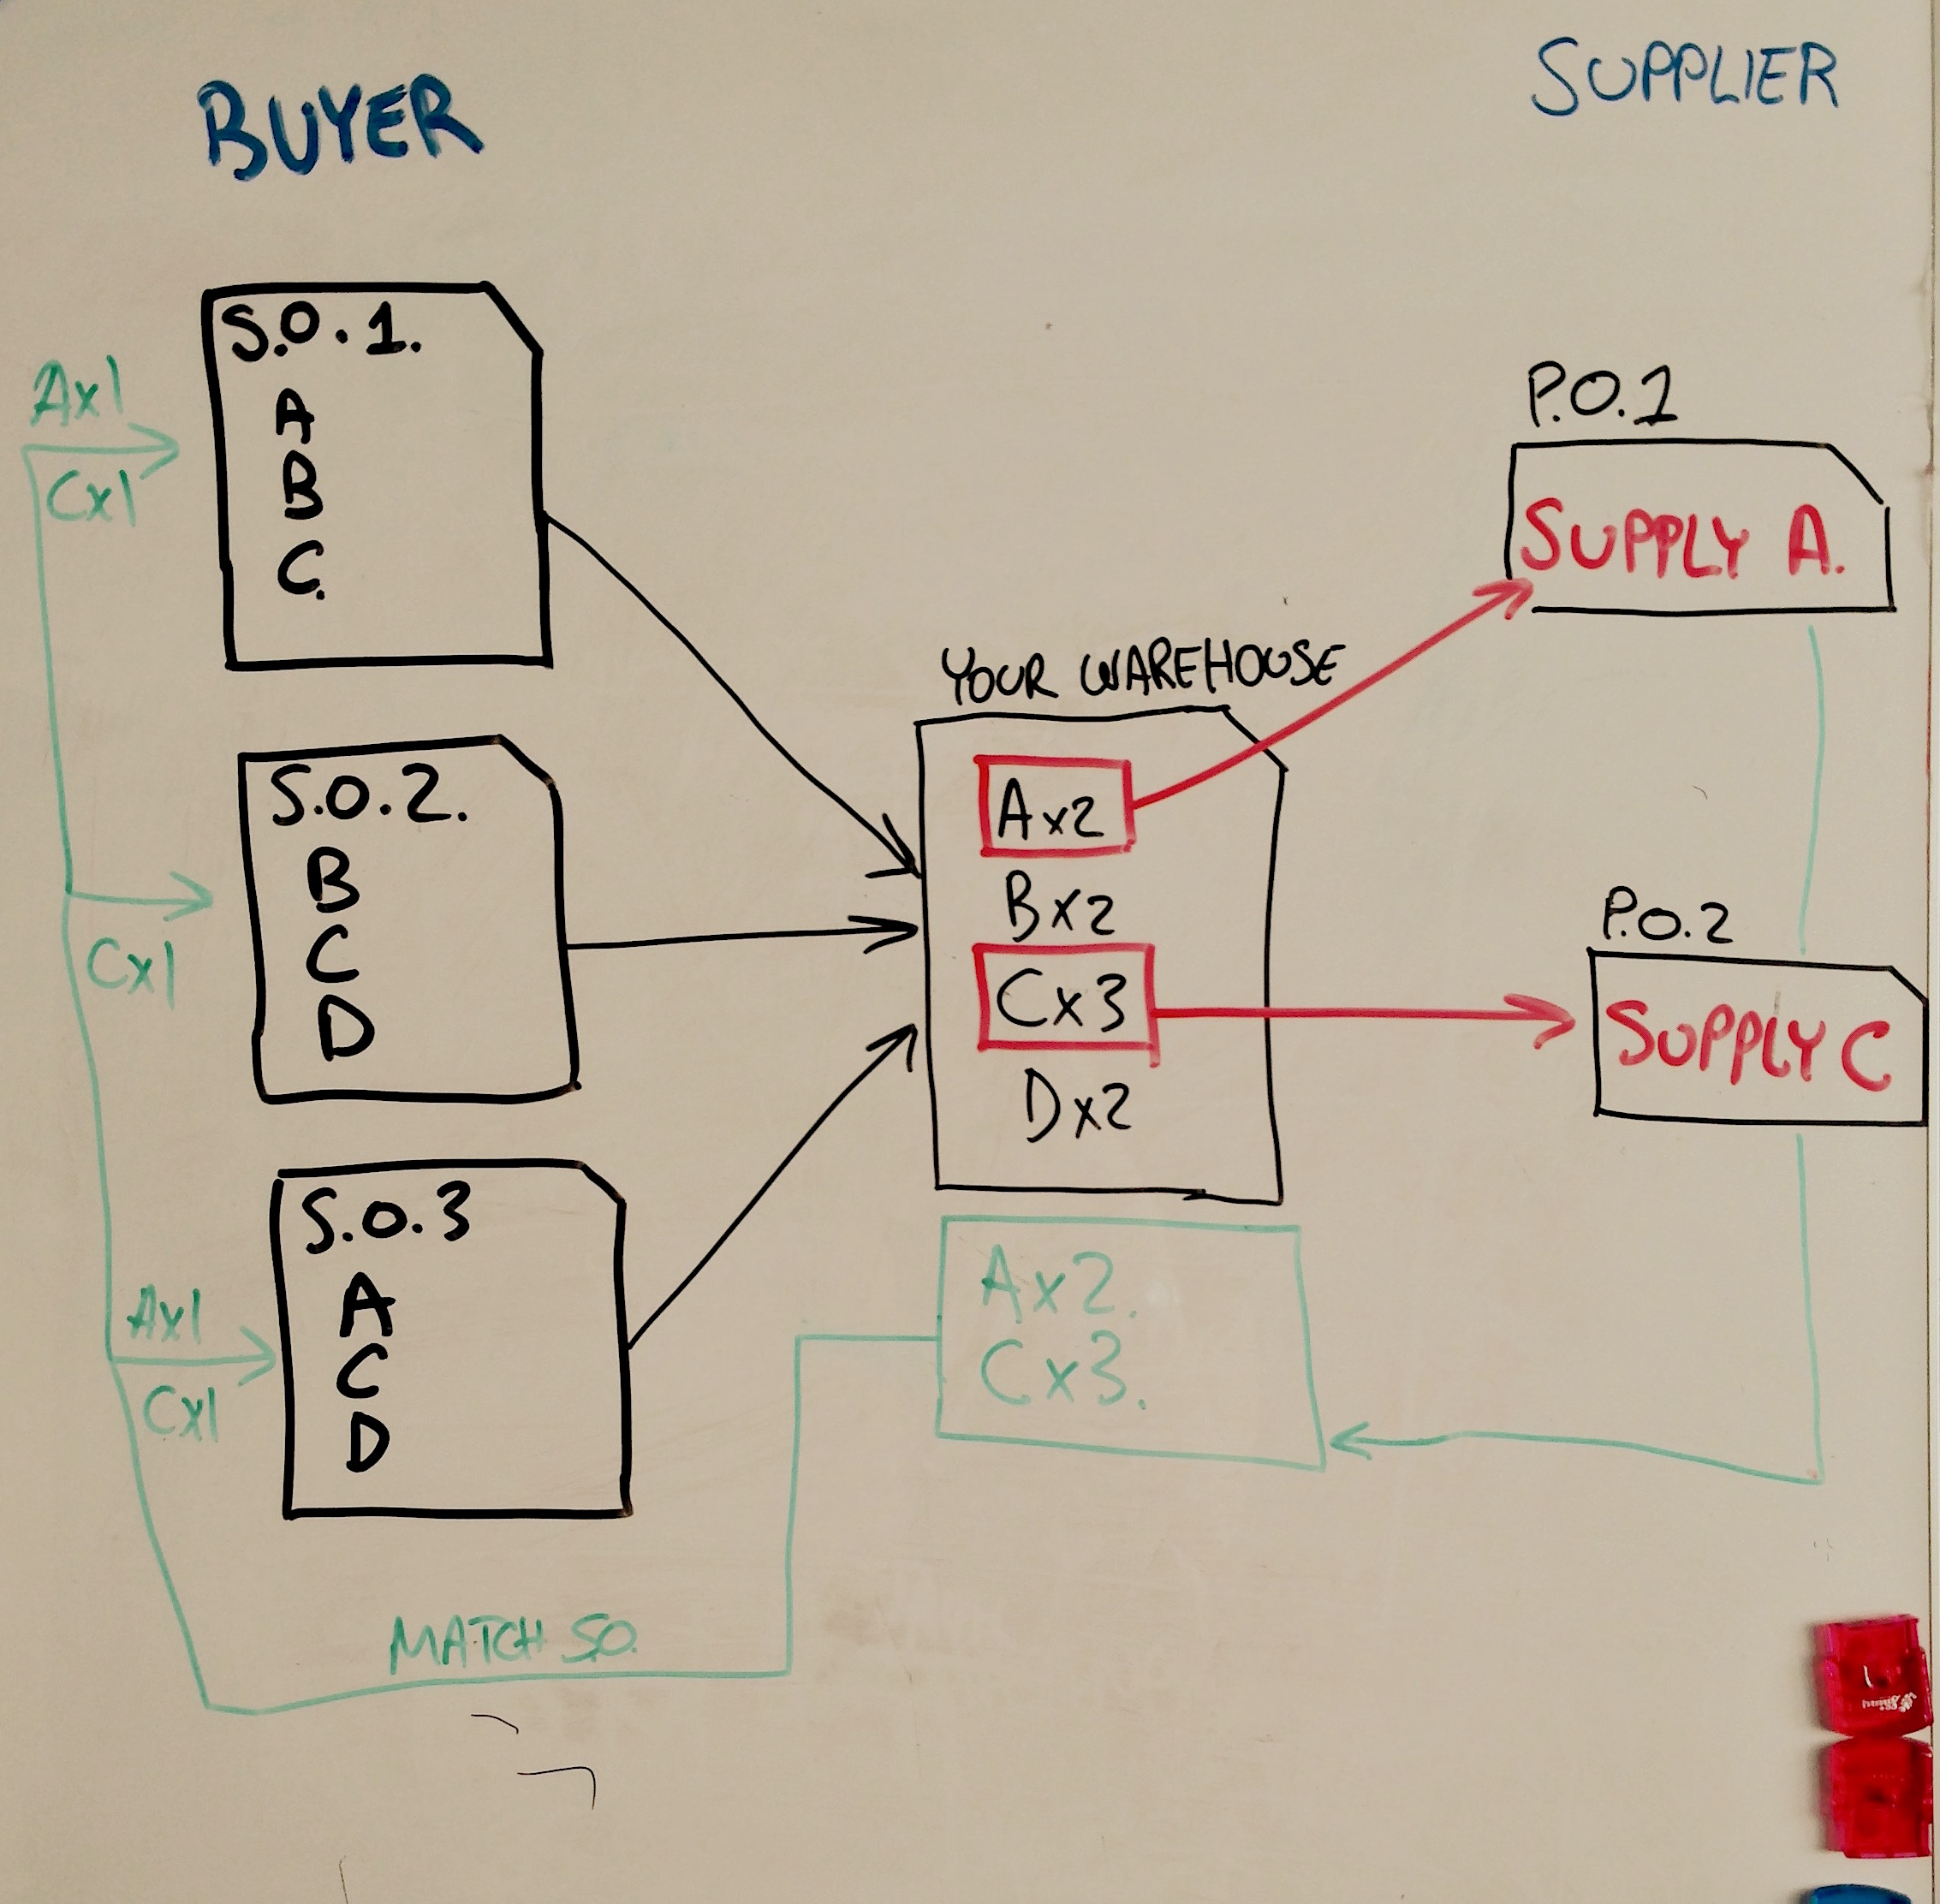 Backorder Visual on a whiteboard